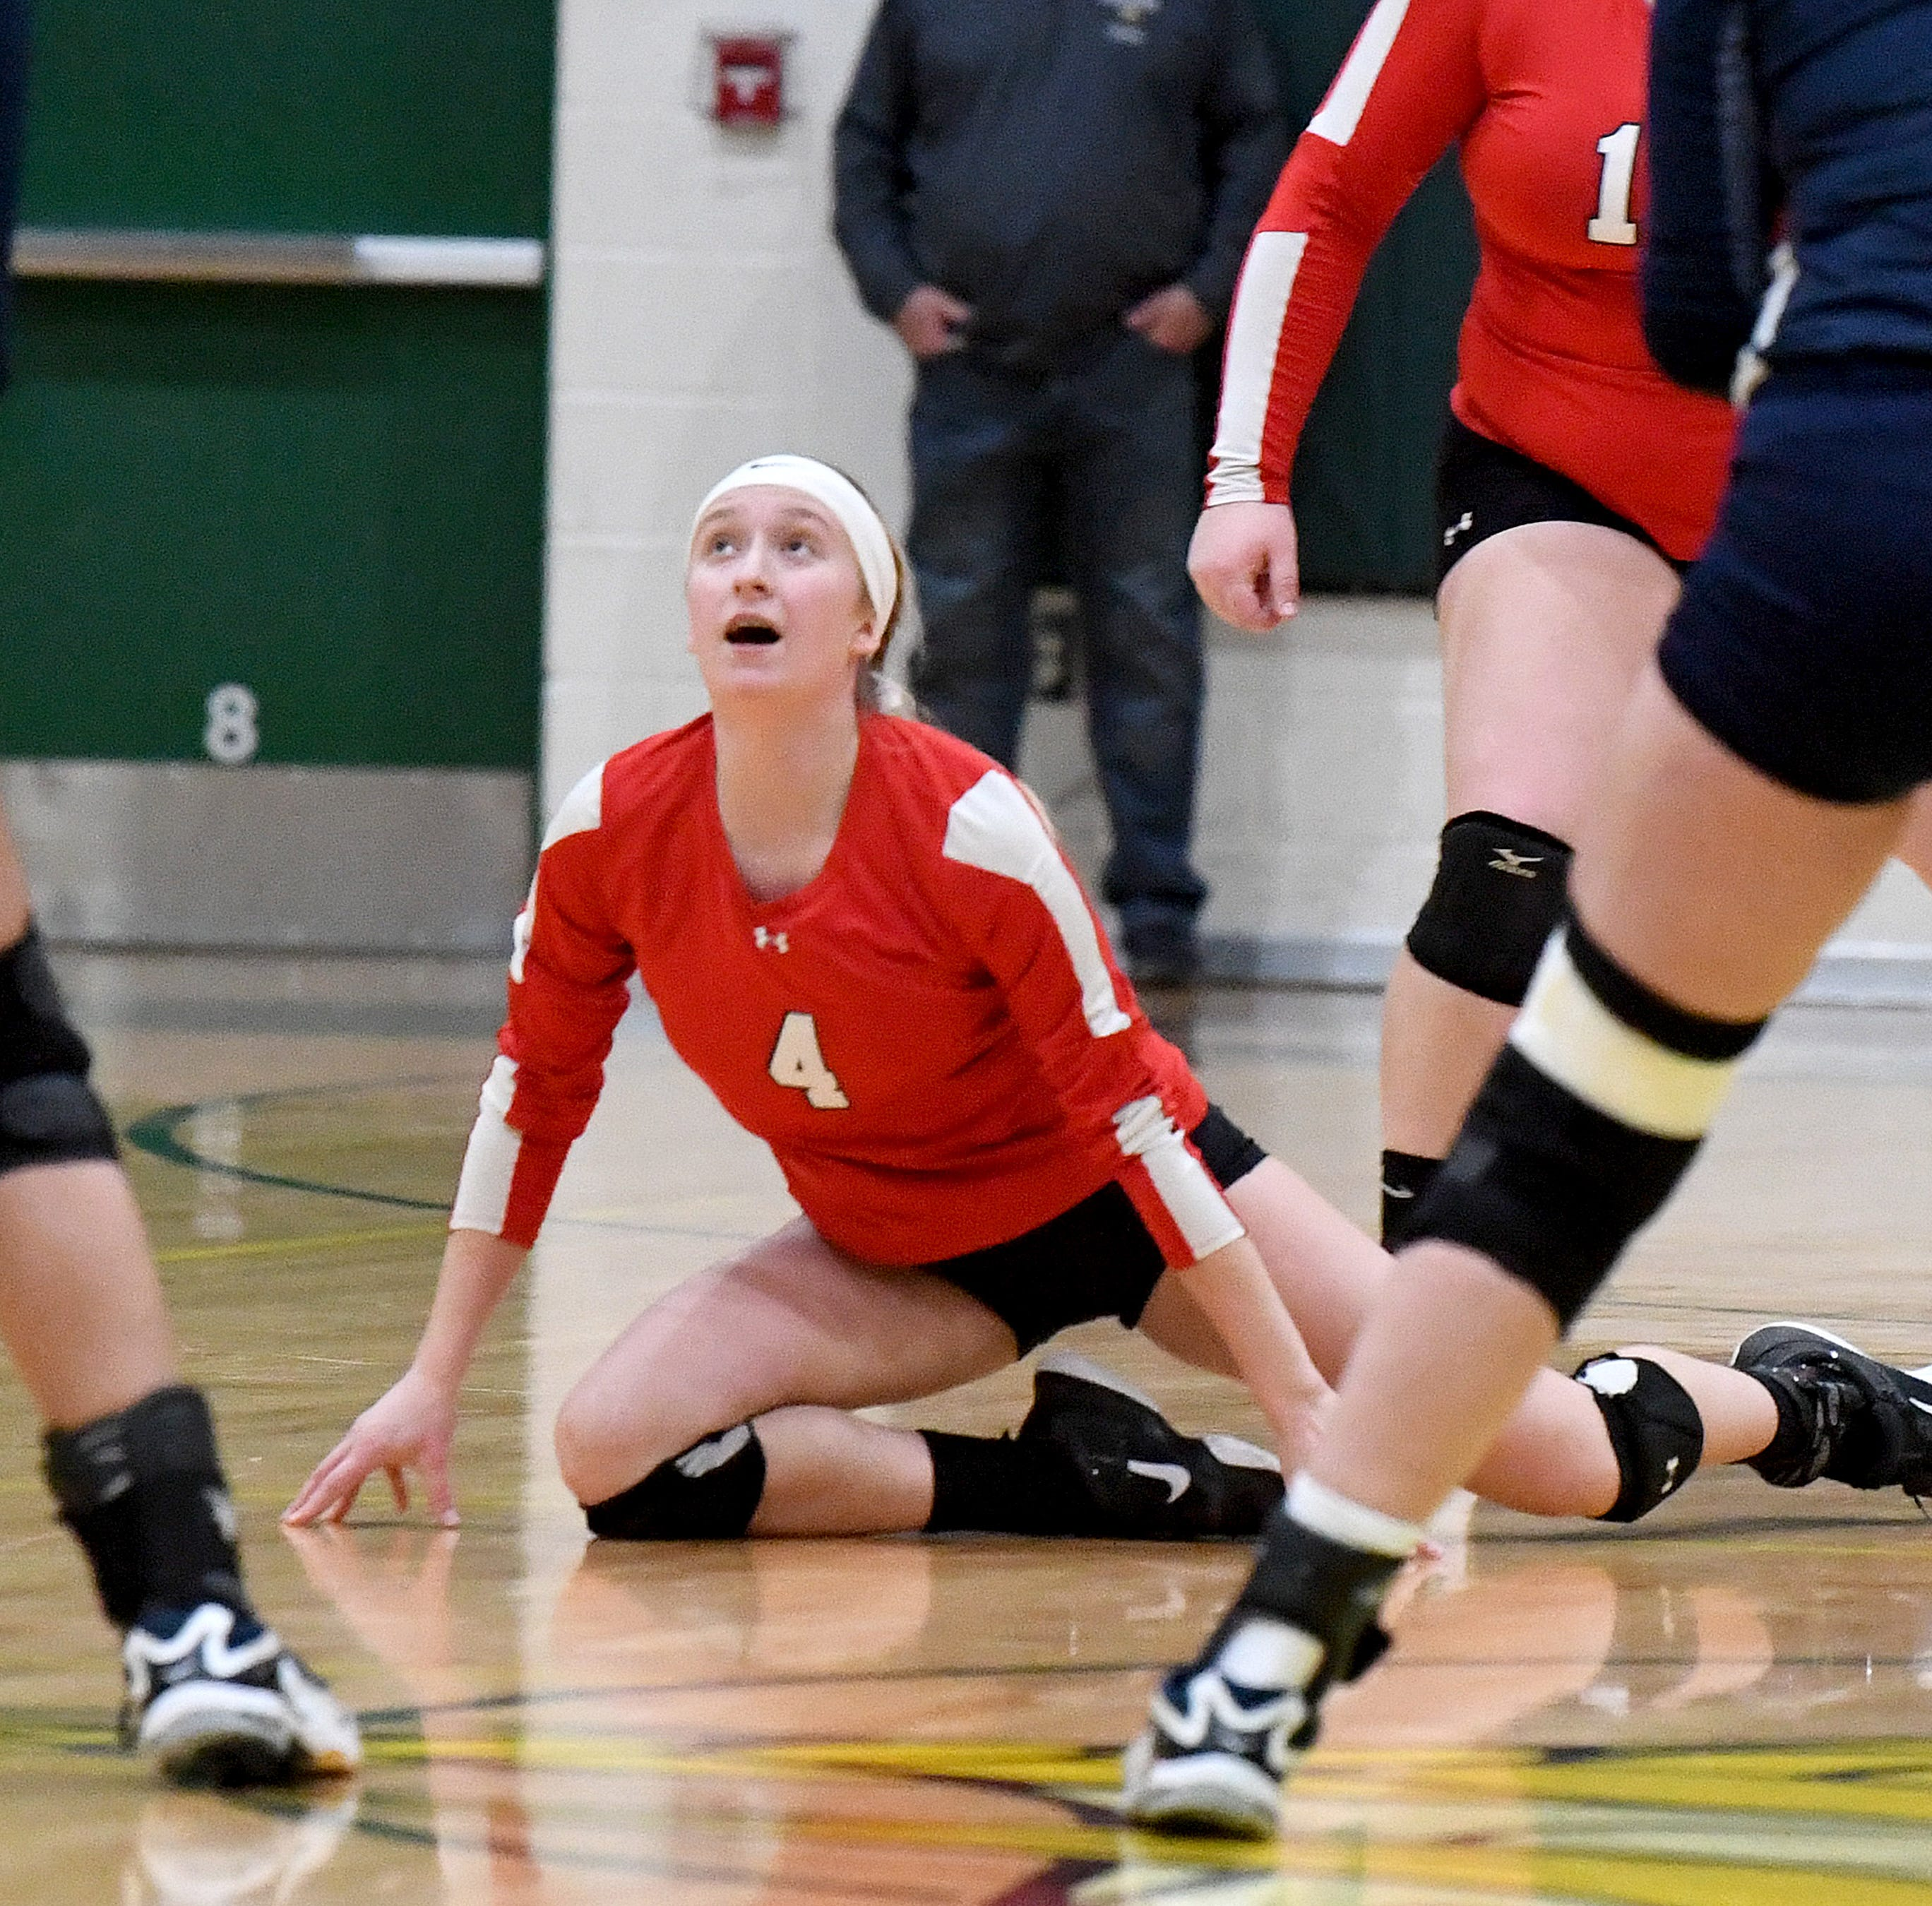 Riverheads comes up short in state title match